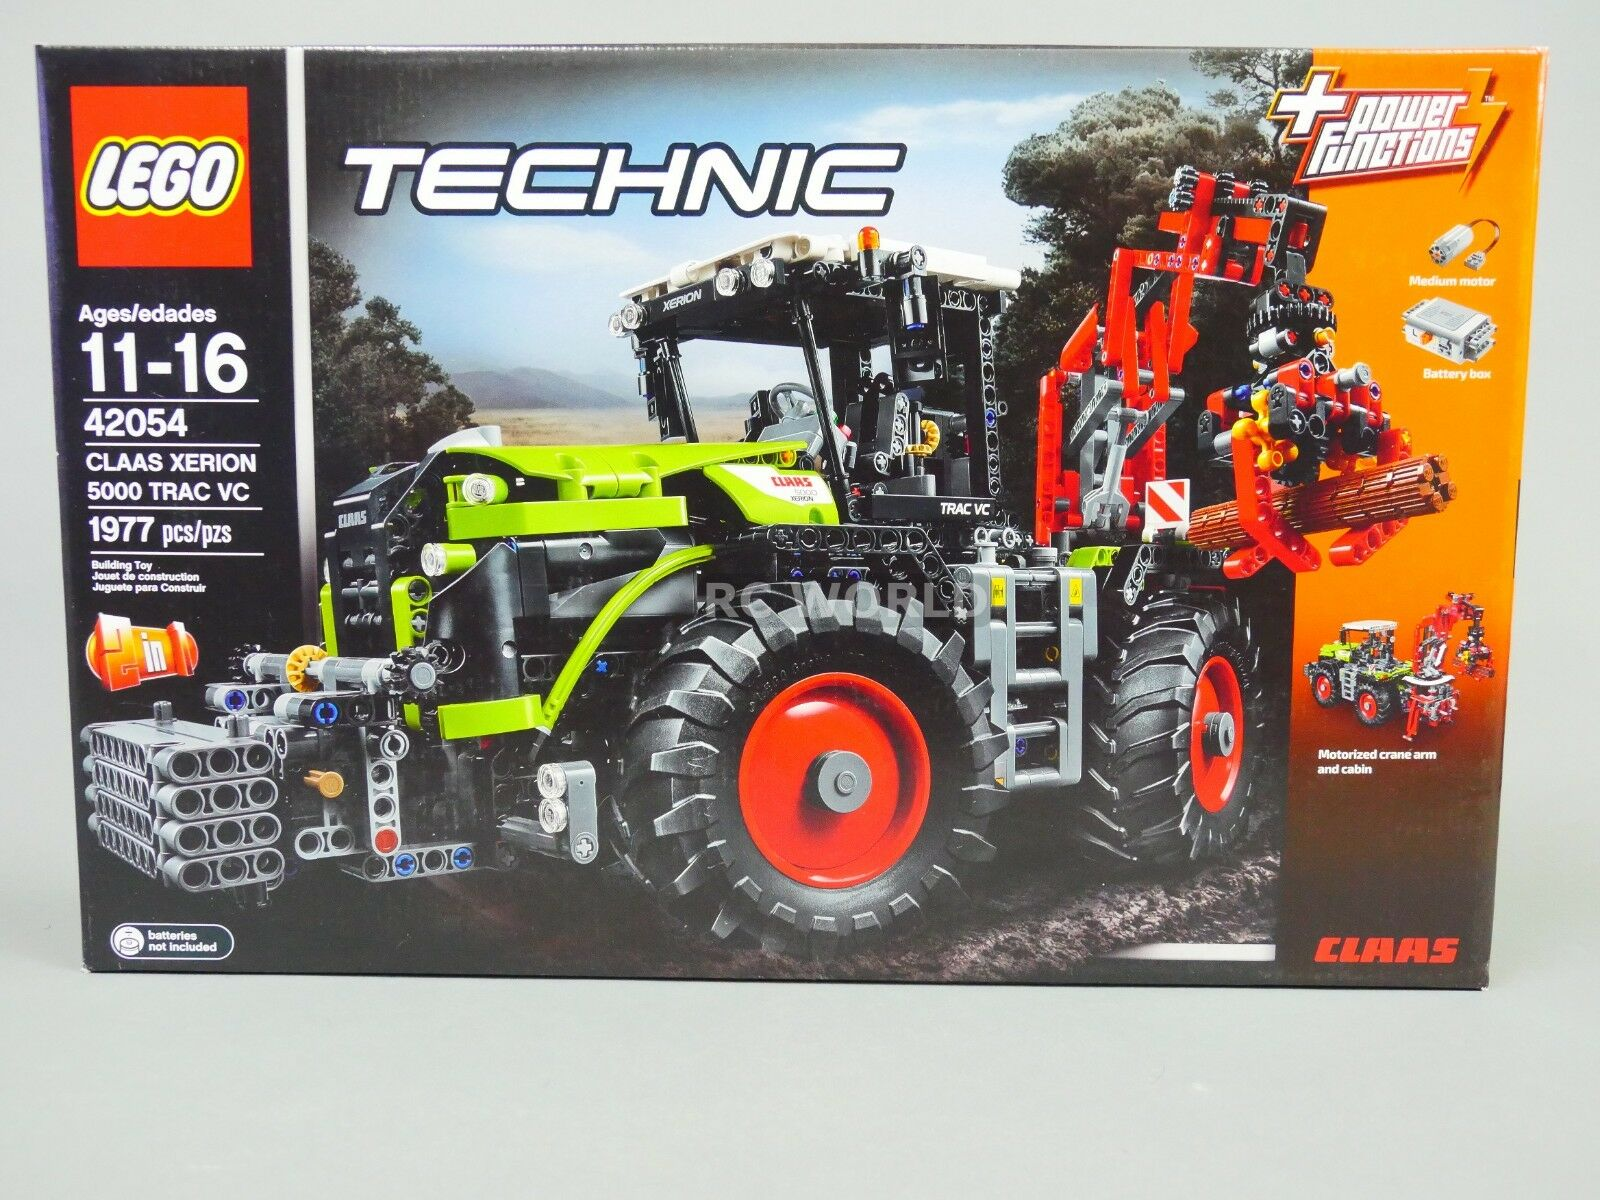 LEGO Technic CLAAS XERION 5000 TRAC VC Tractor Tractor Tractor  42054 (1977 pcs)  rk1t 7af1ac